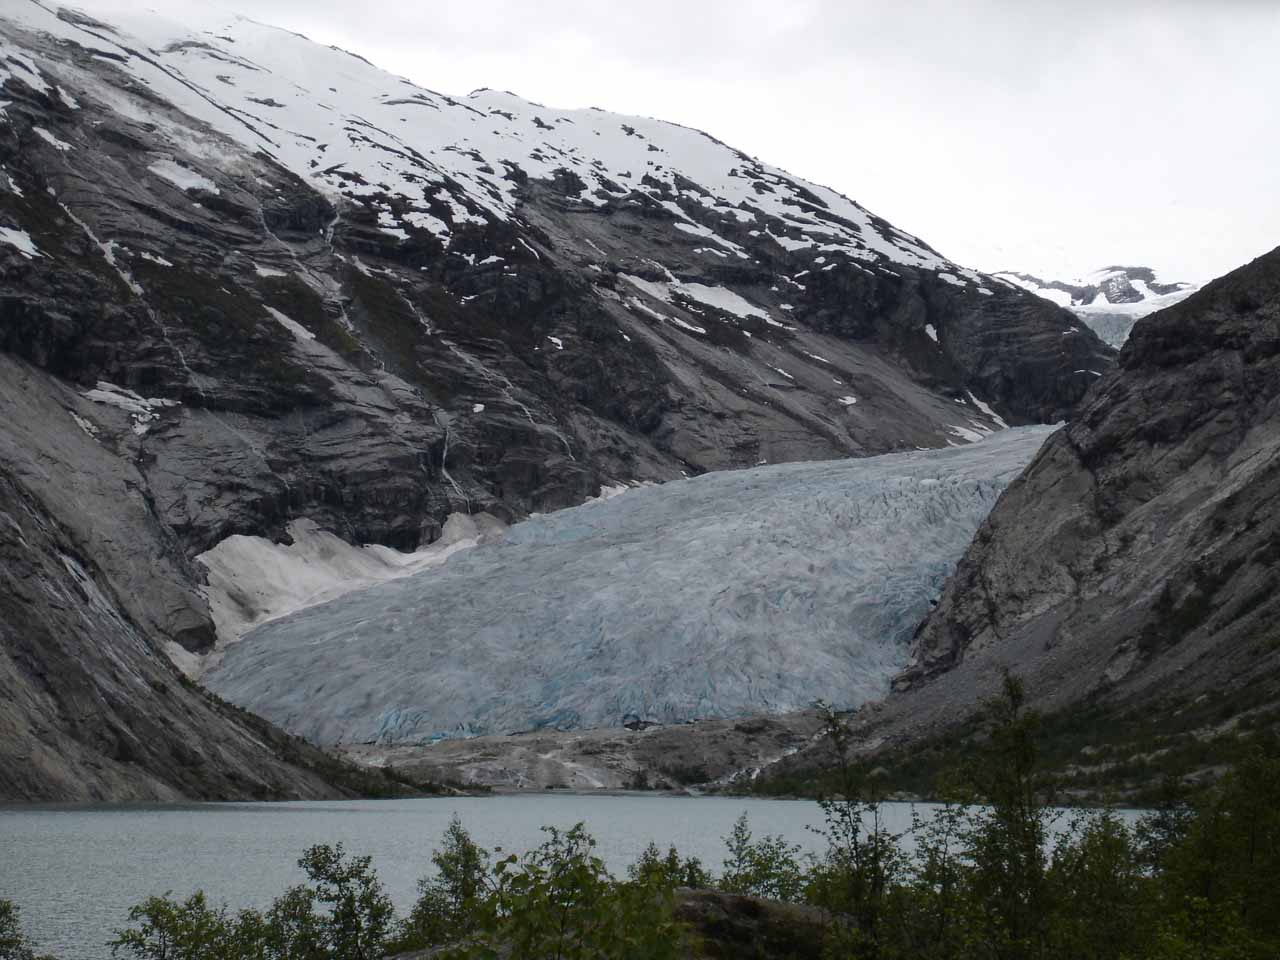 Julie's camera seemed to better capture the subtle blue color of the ice on the Nigardsbreen